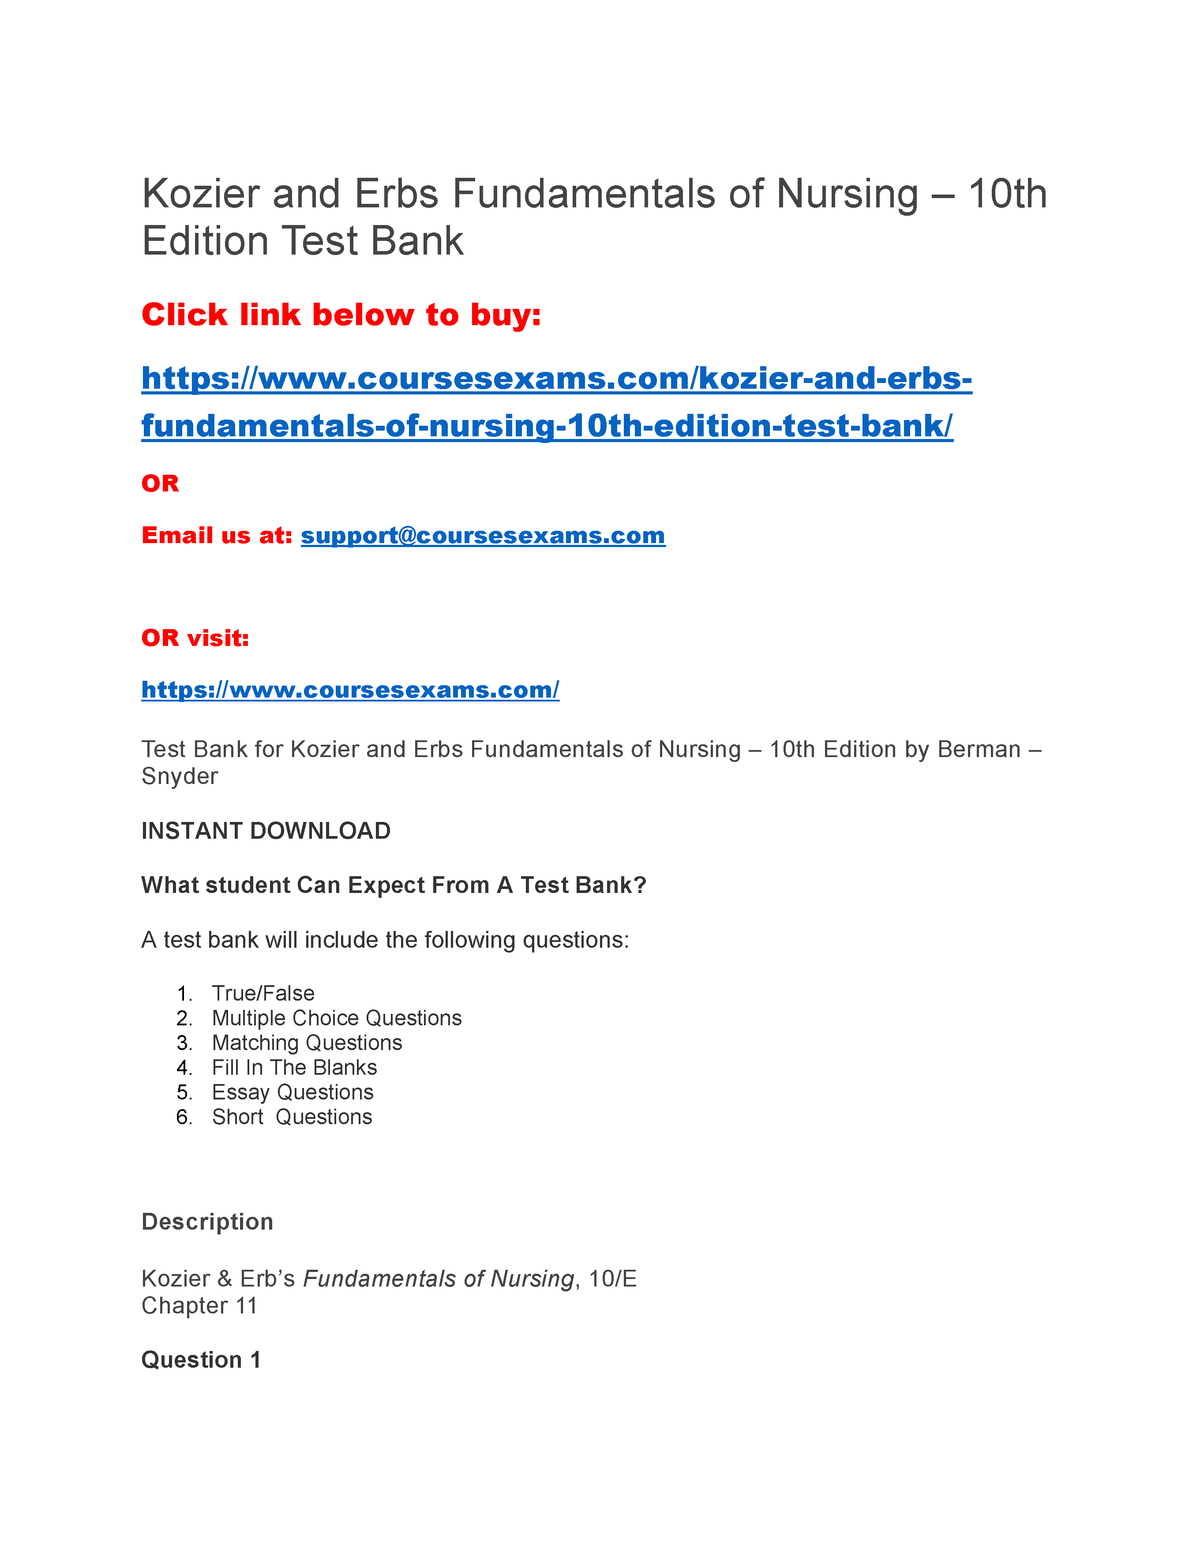 Kozier and Erbs Fundamentals of Nursing – 10th Edition Test